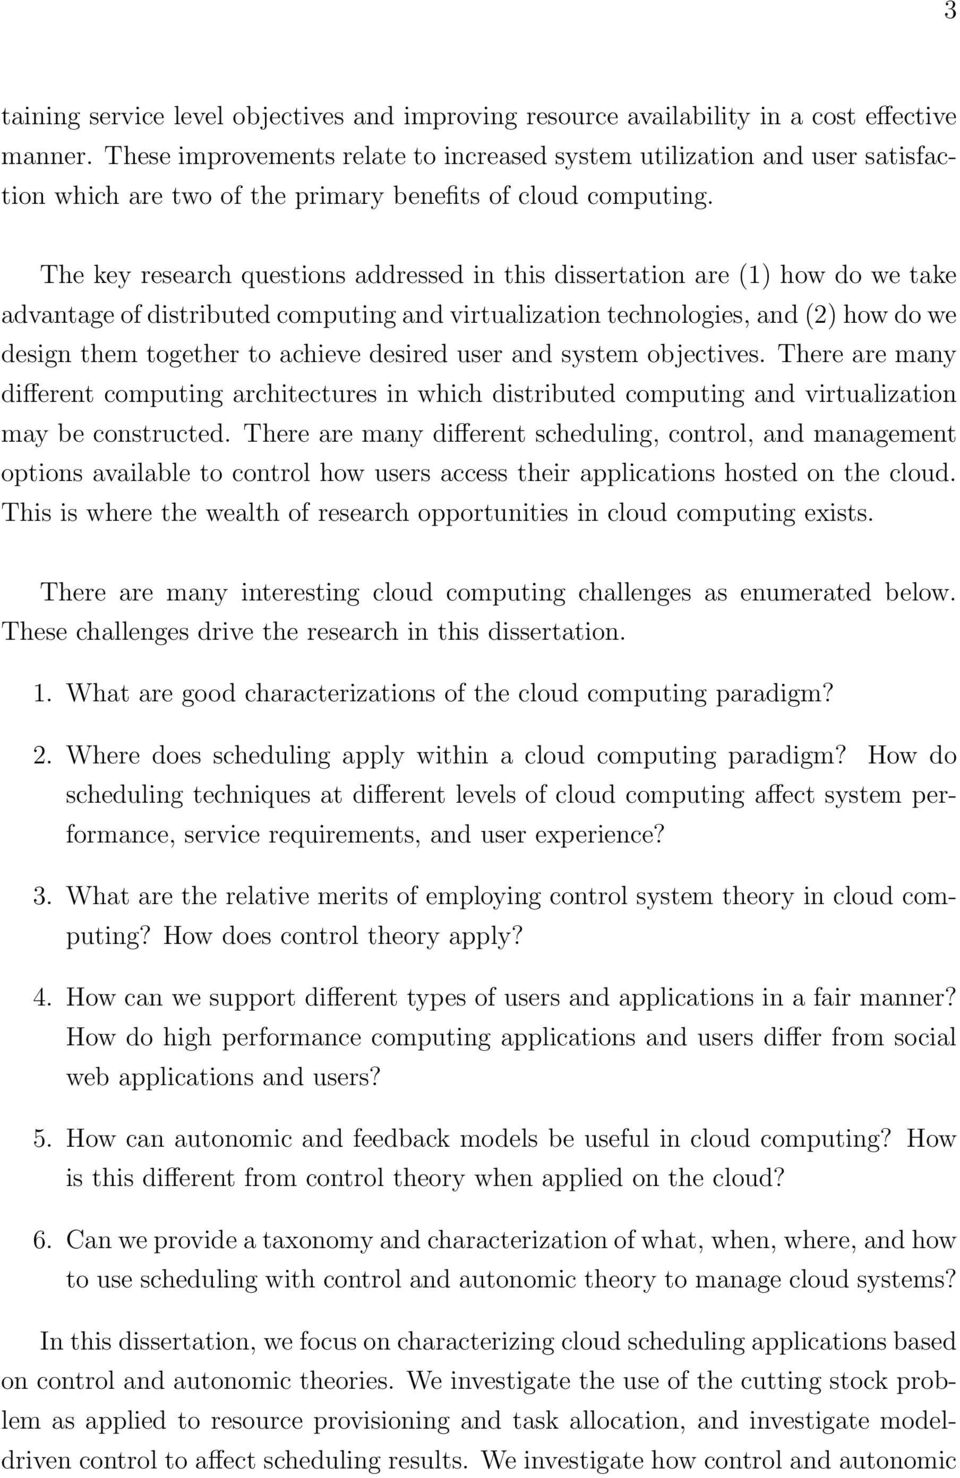 The key research questions addressed in this dissertation are (1) how do we take advantage of distributed computing and virtualization technologies, and (2) how do we design them together to achieve